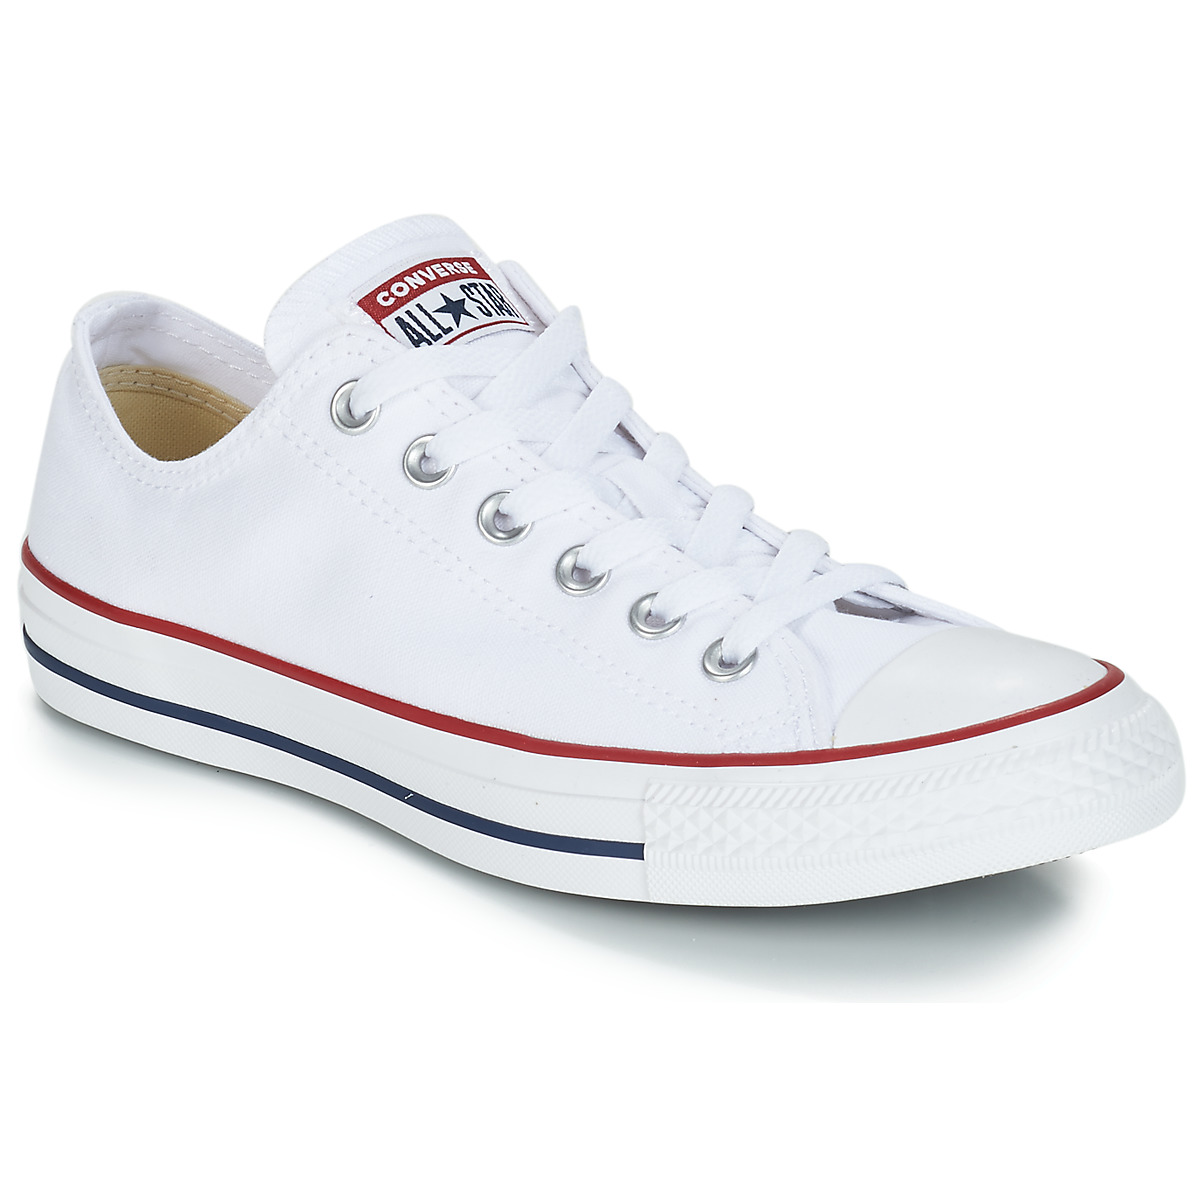 Deportivas bajas Converse CHUCK TAYLOR ALL STAR CORE OX Blanco / Optical